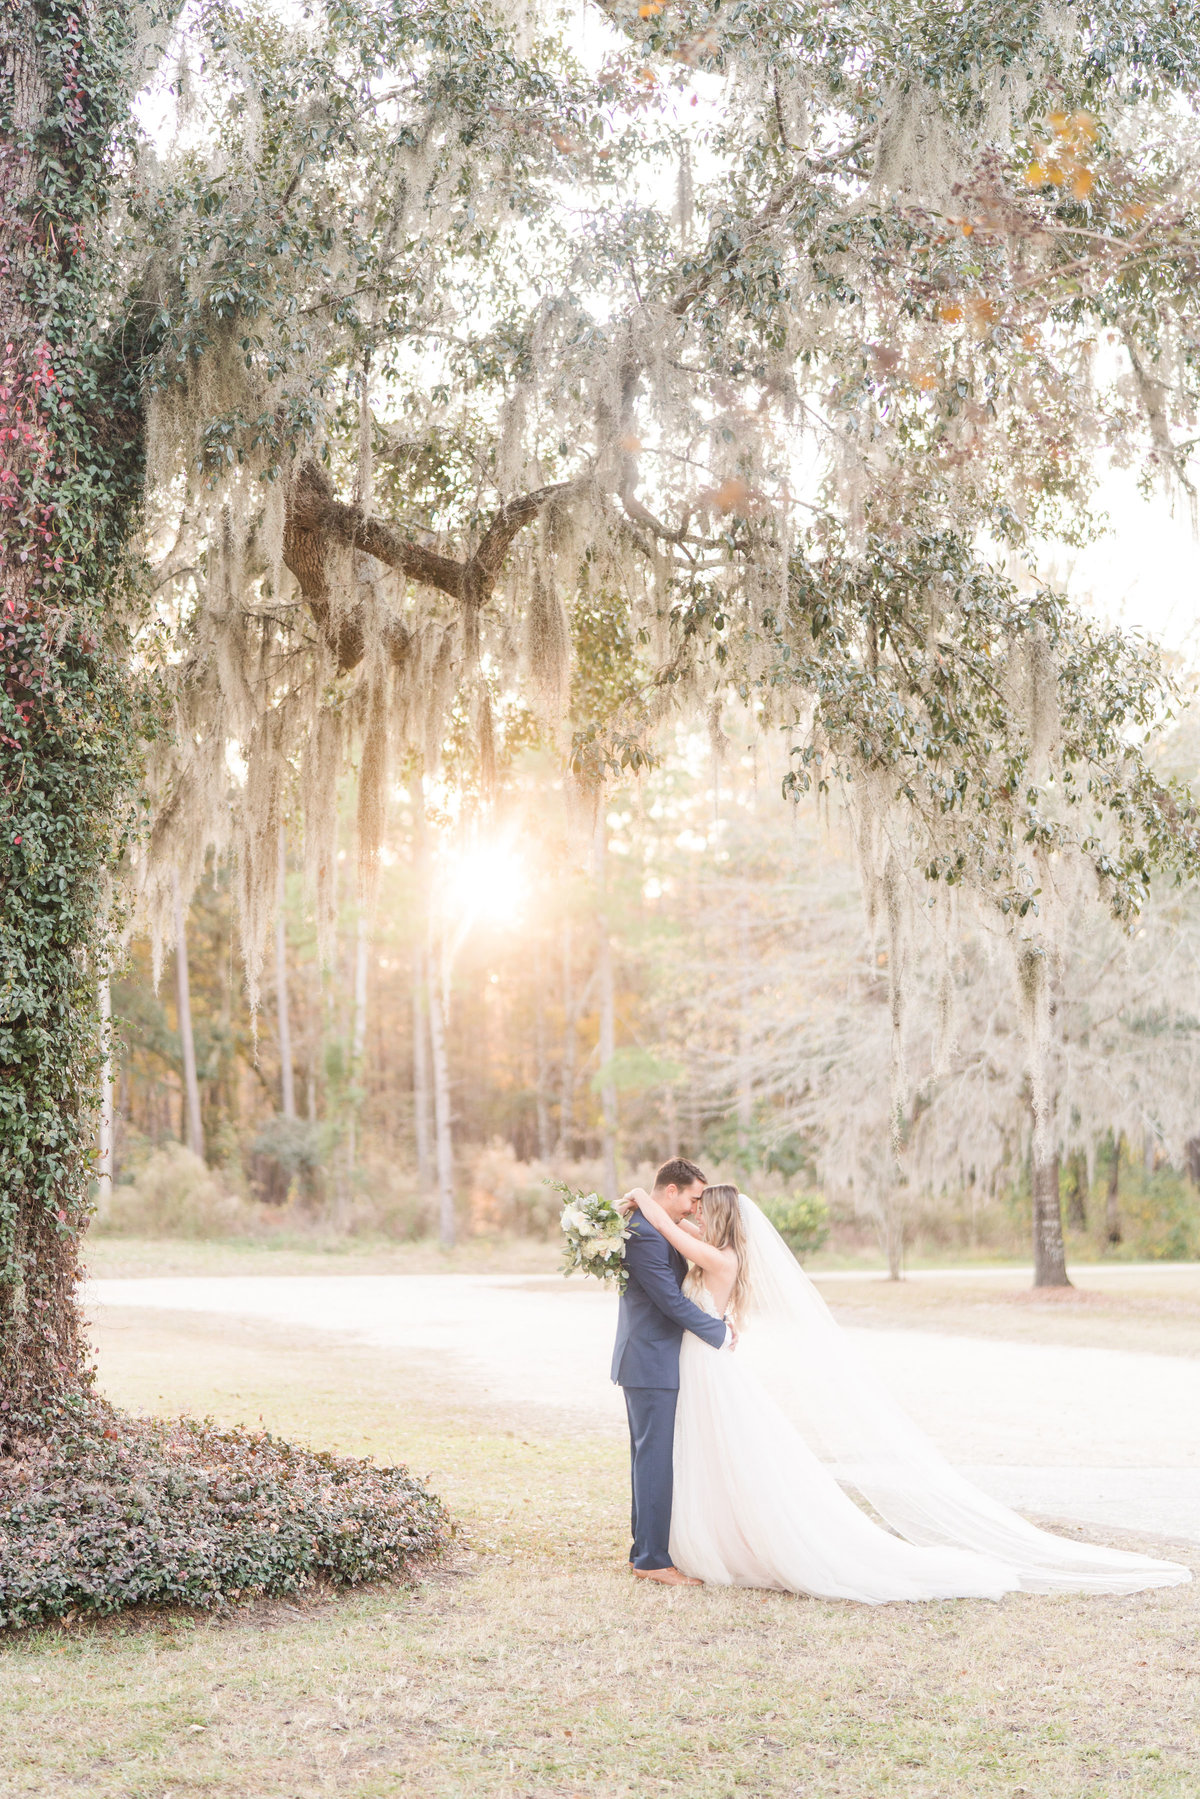 Kate Dye Photography Wedding Engagement Lifestyle Charleston South Carolina Photographer Bright Airy Colorful8